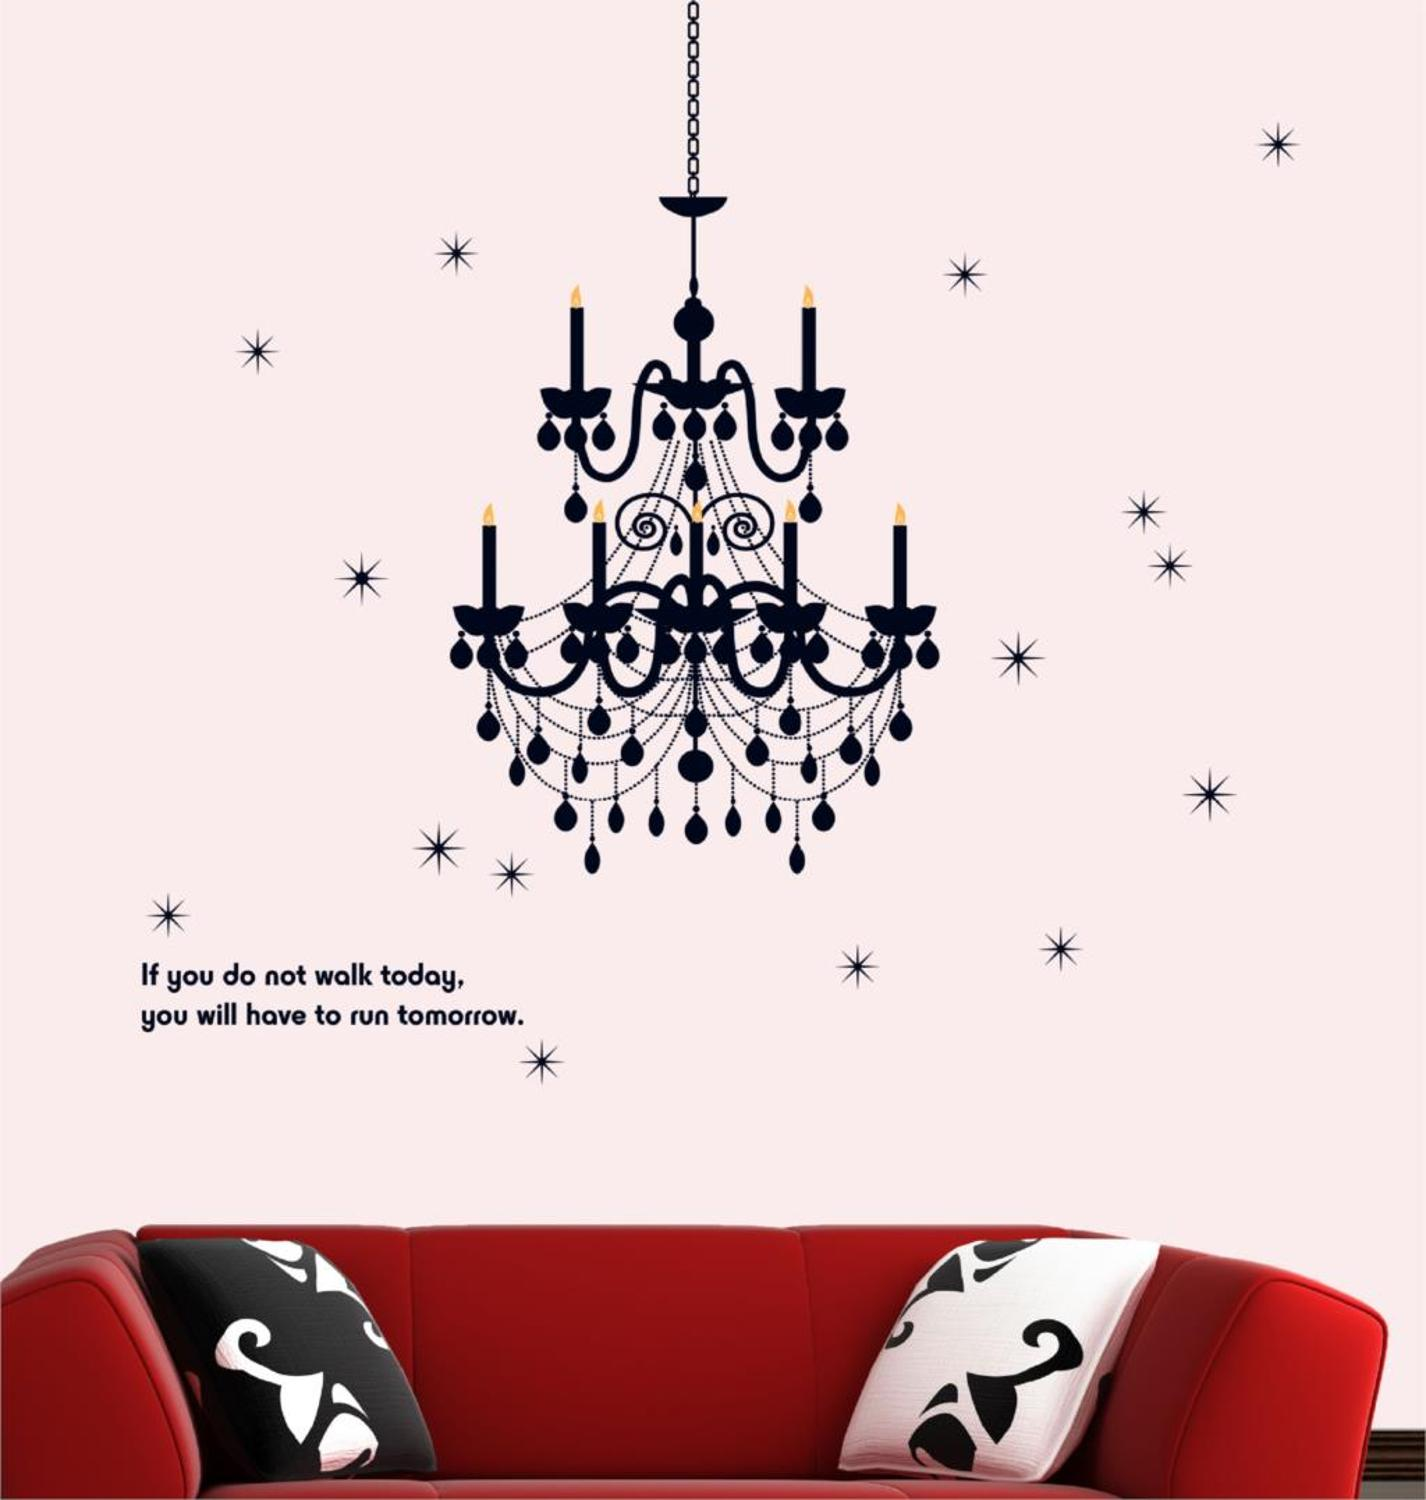 Lamp light wall art decor removable mural vinyl decal sticker purple - Pvc Wall Stickers Chandelier Simple Candlelight Dinner Continental Cozy Living Room Tv Wall Stickers Wall Stickers